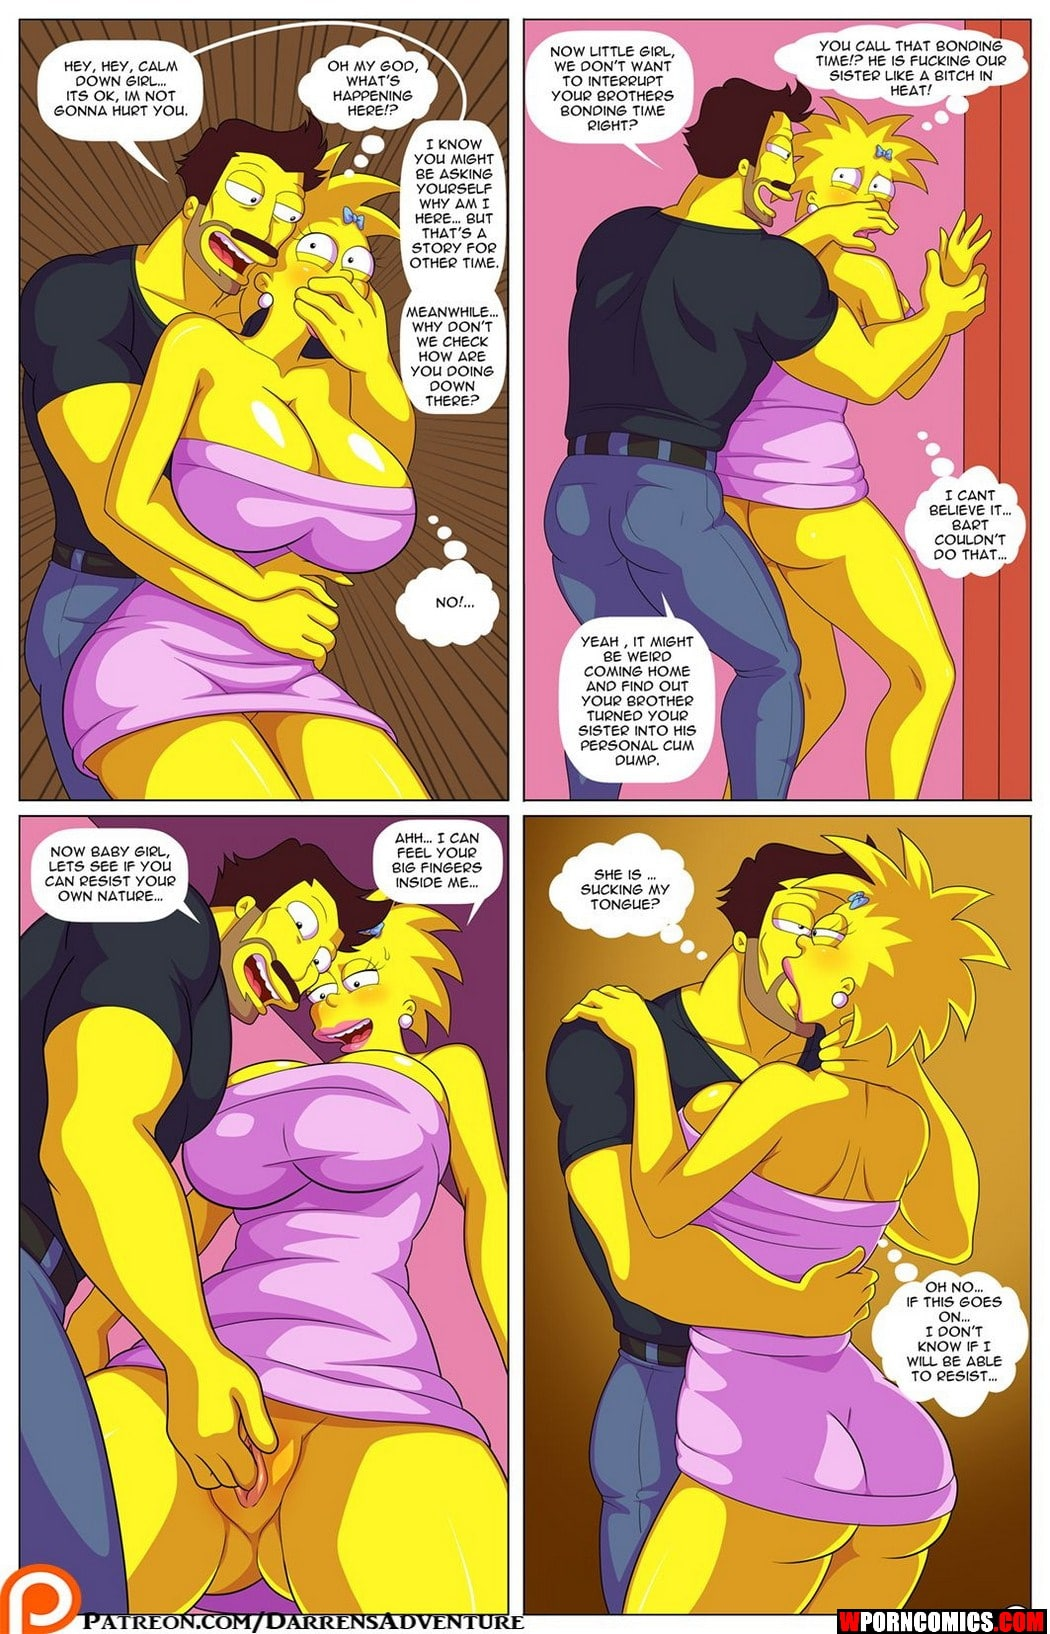 porn-comic-darrens-adventure-part-5-simpsons-2020-03-23/porn-comic-darrens-adventure-part-5-simpsons-2020-03-23-5857.jpg